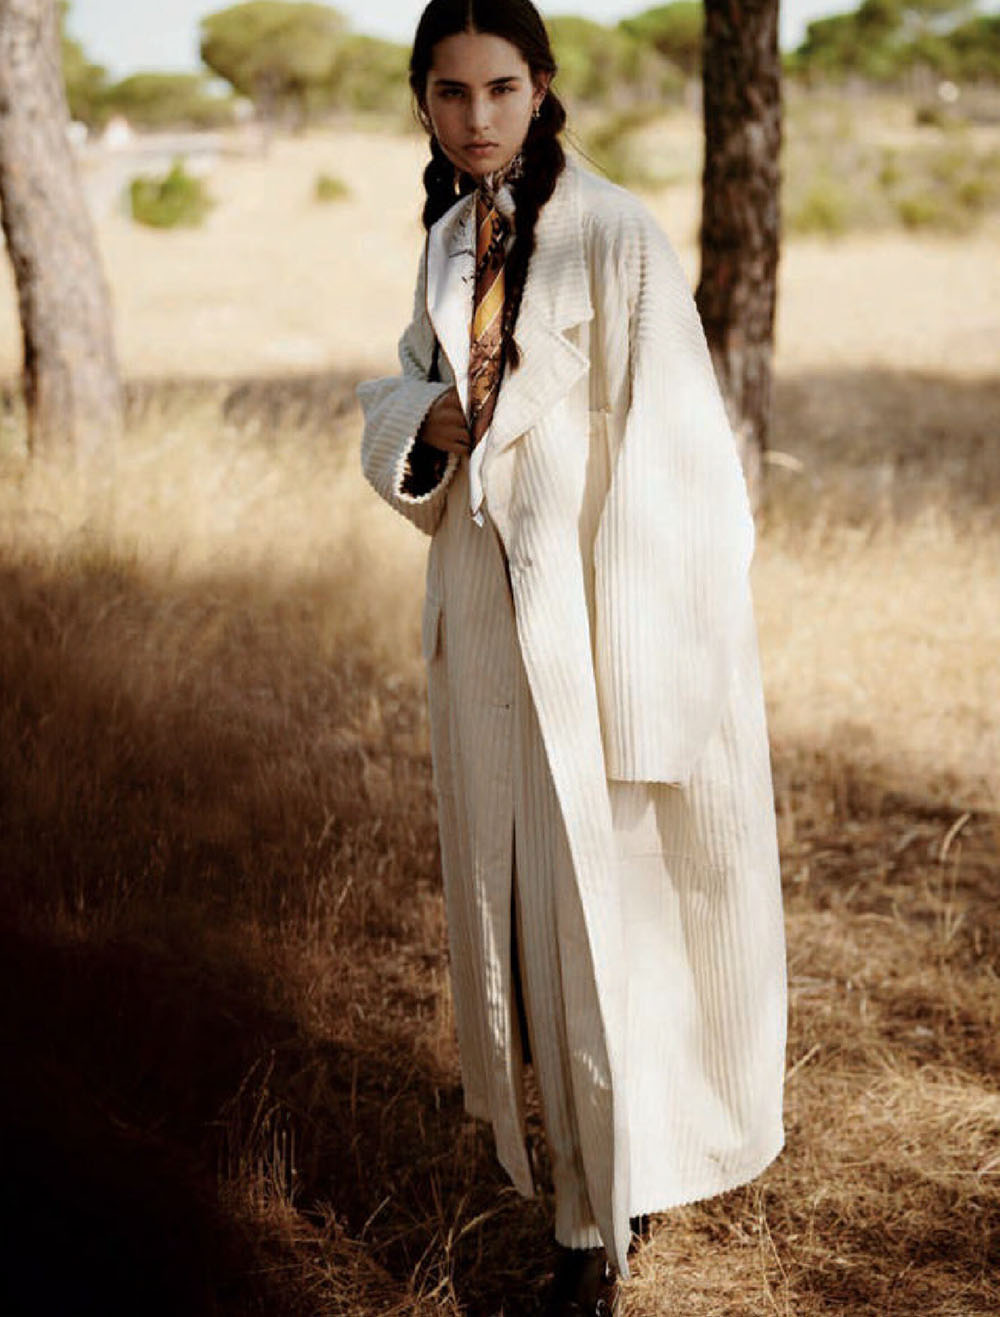 Africa Penalver by Boo George for Vogue Spain November 2020